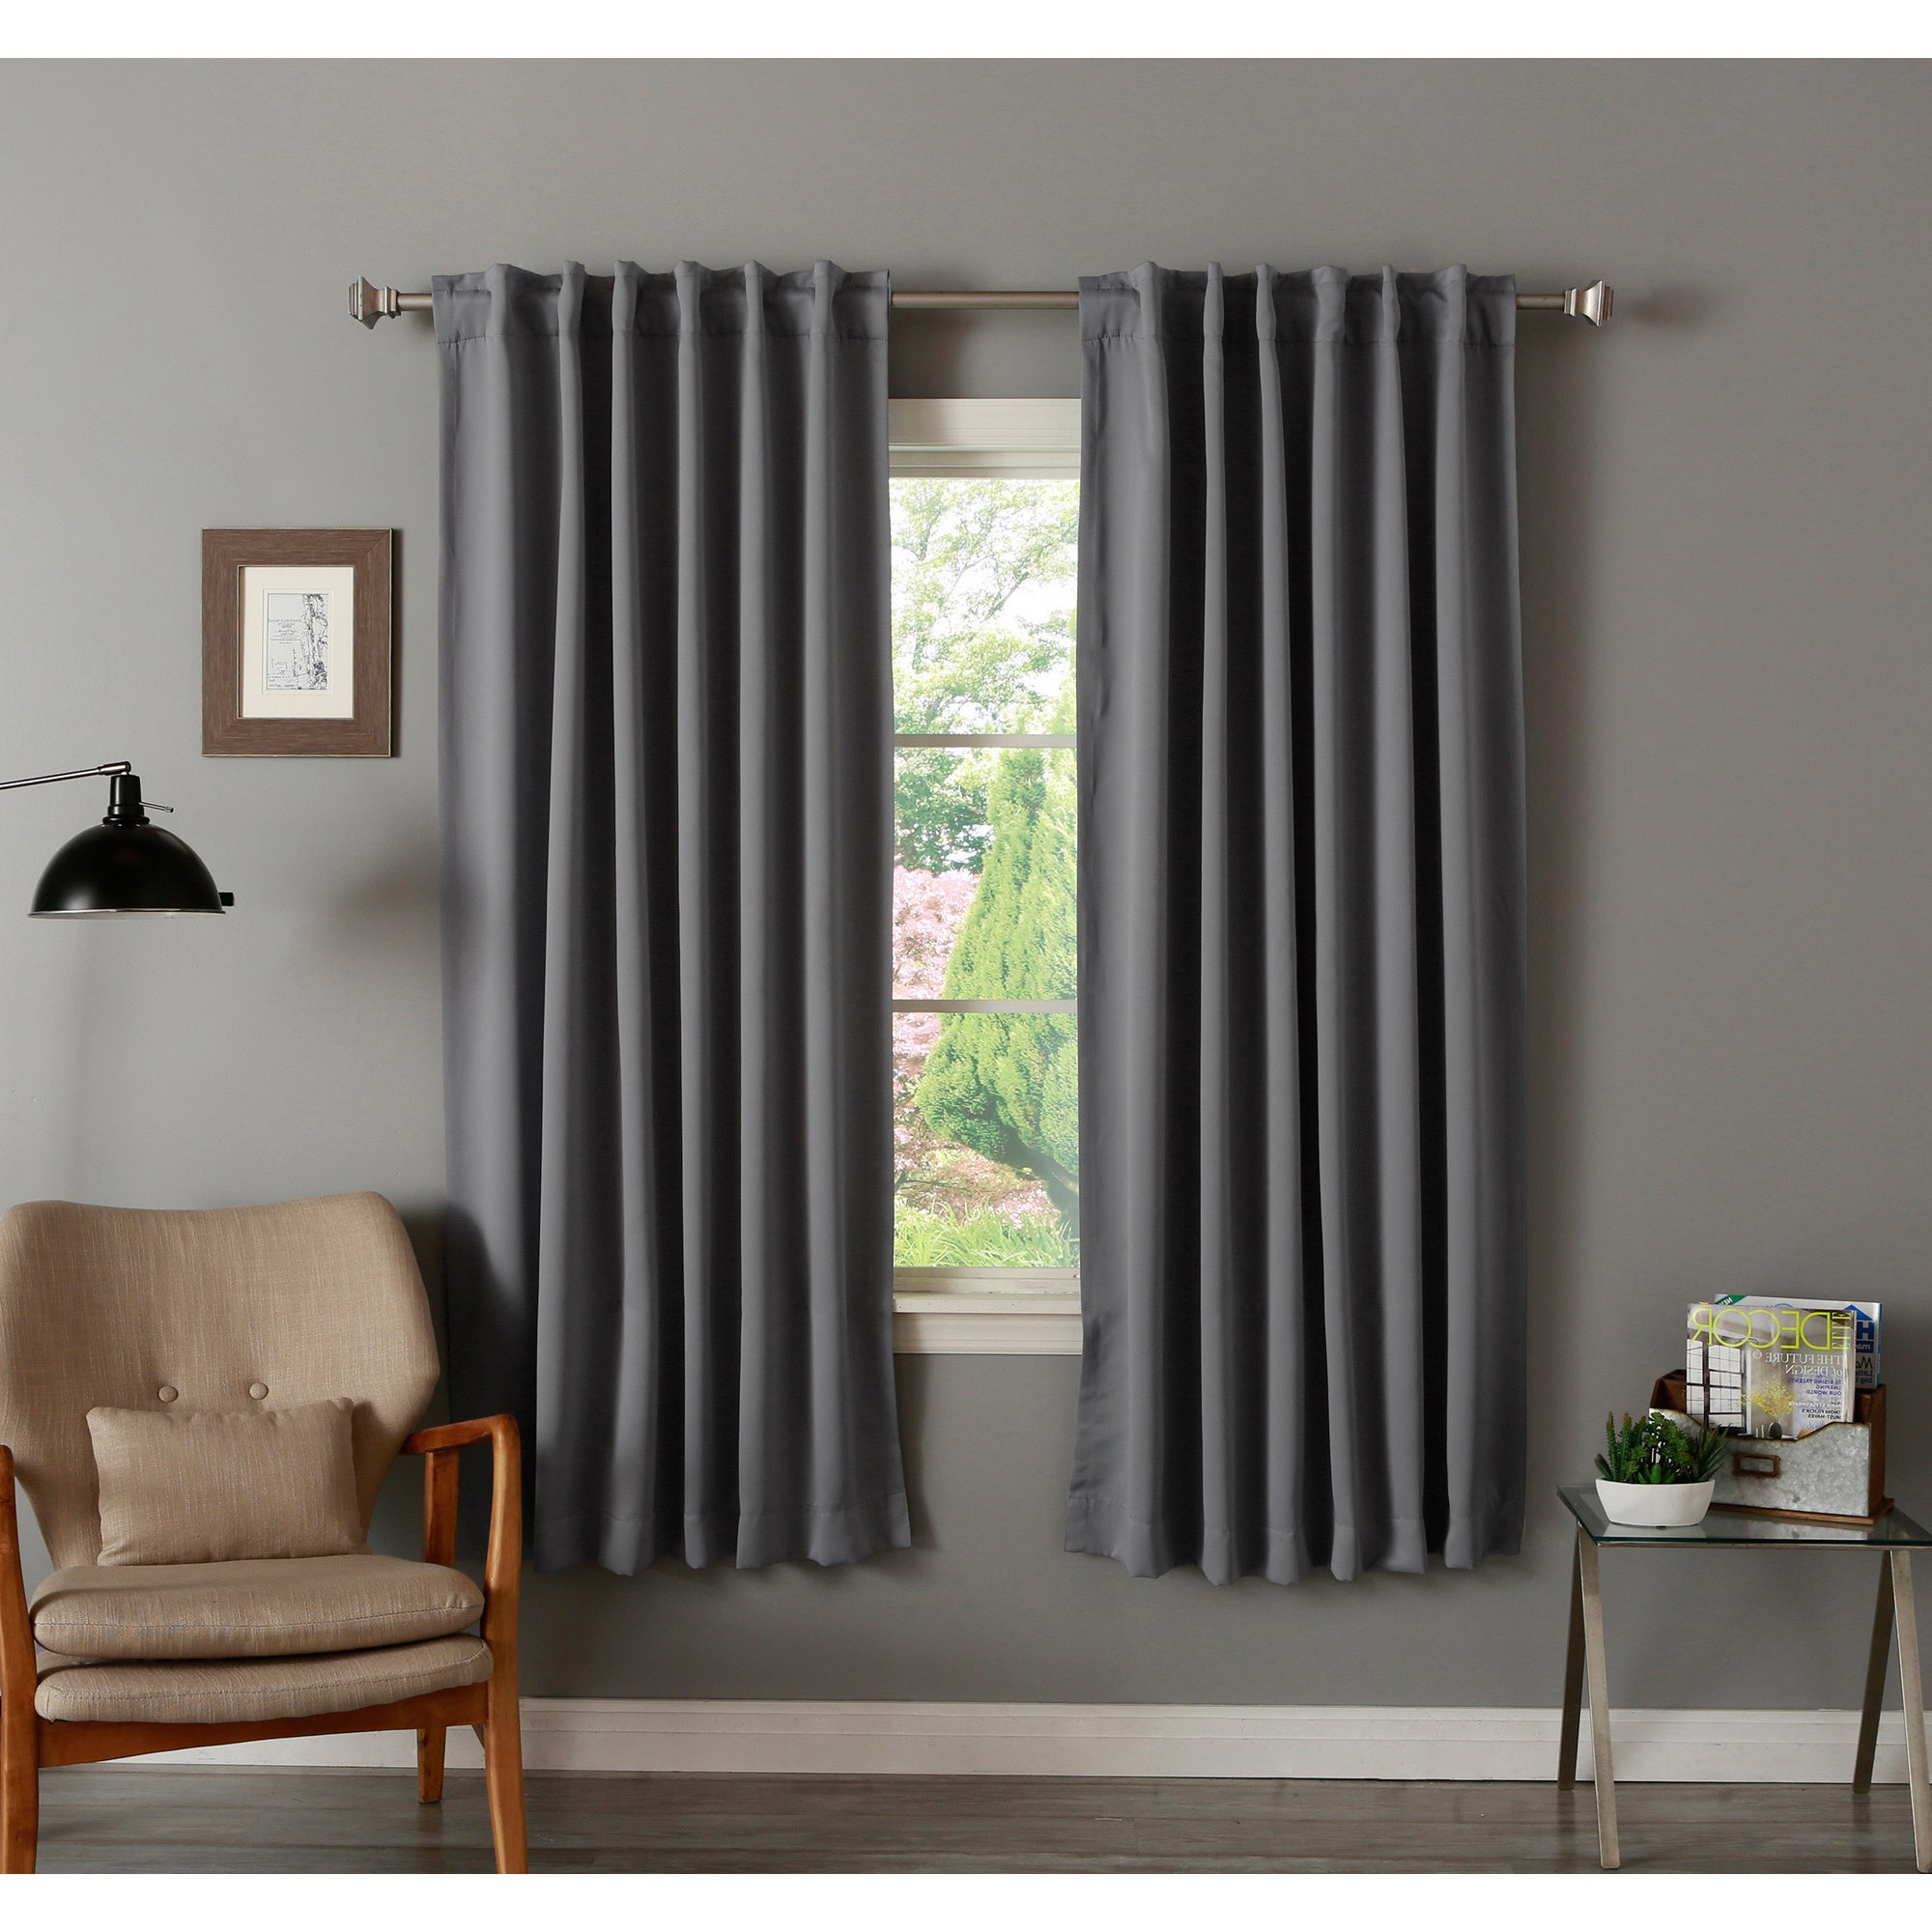 Trendy Aurora Home Insulated 72 Inch Thermal Blackout Curtain Panel Pair – 52 X 72 Intended For Insulated Thermal Blackout Curtain Panel Pairs (View 7 of 20)